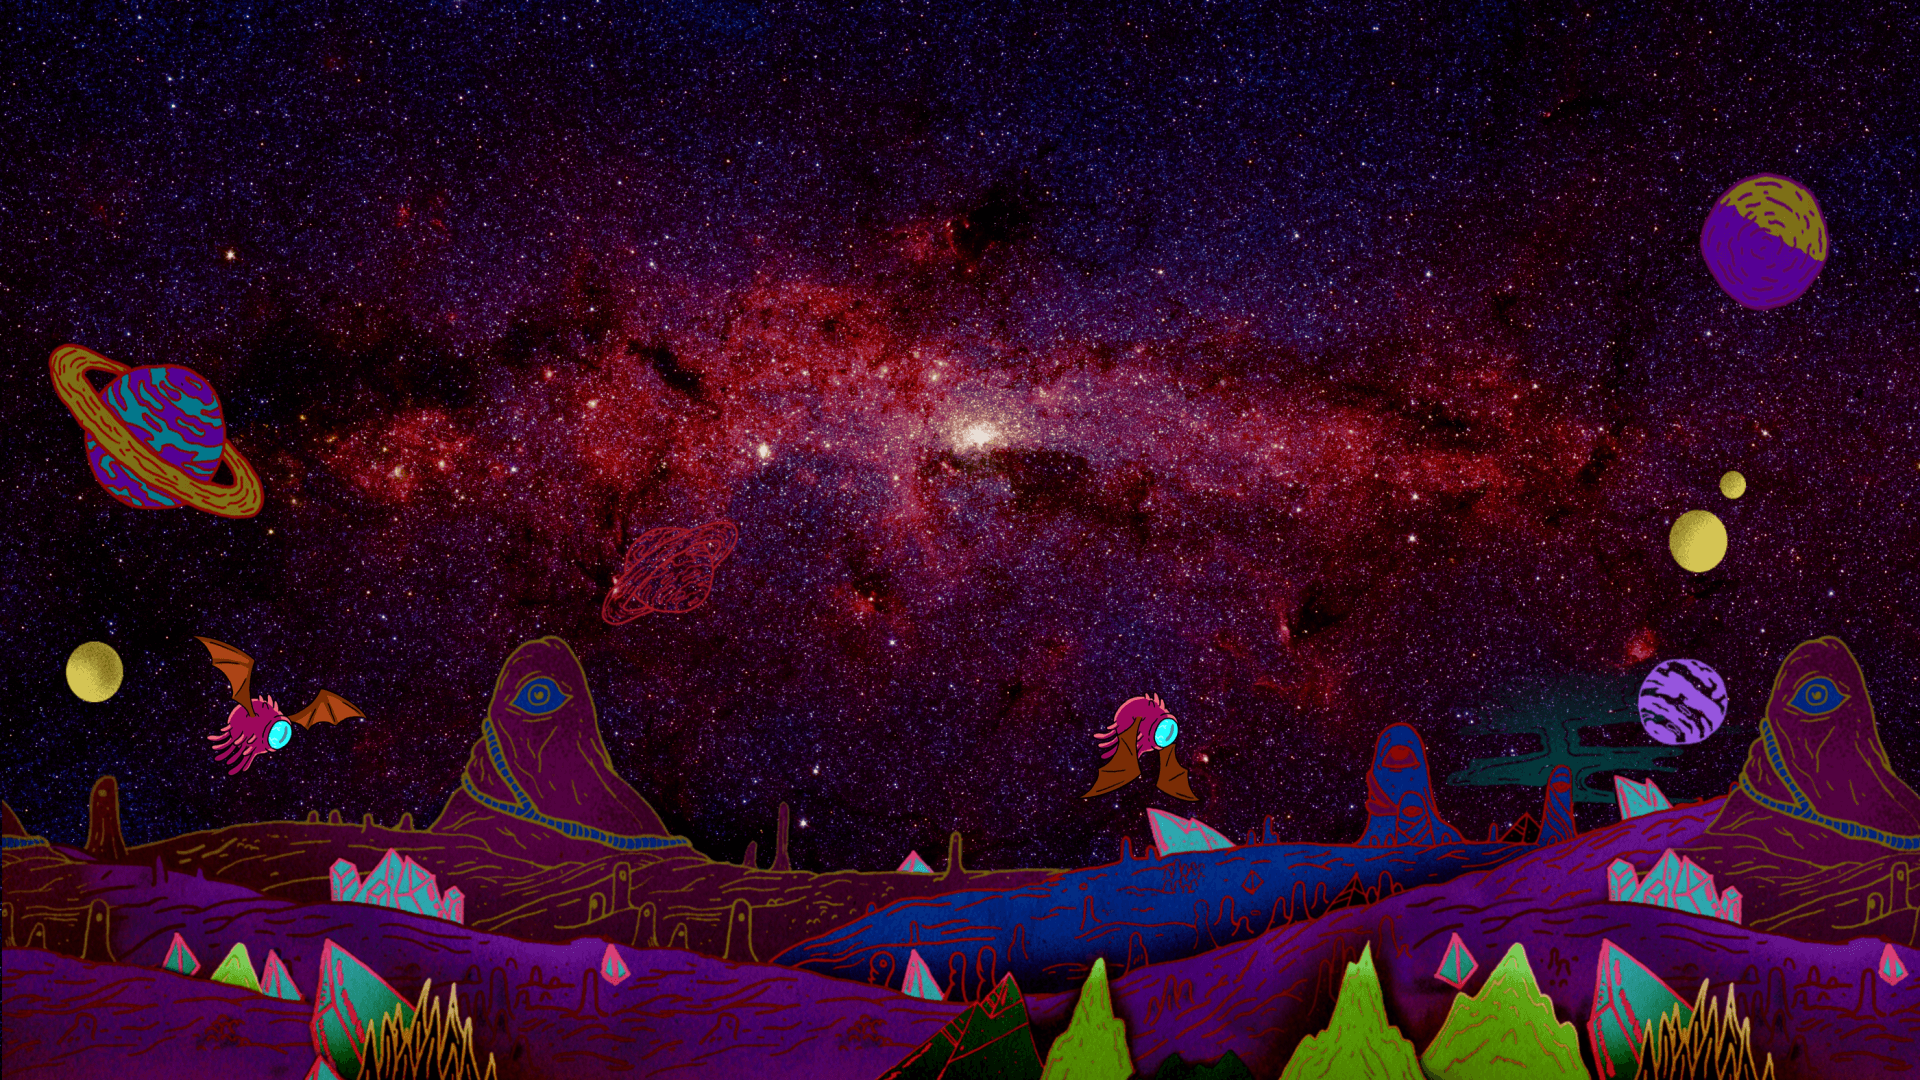 Rick And Morty Wallpapers - The RamenSwag